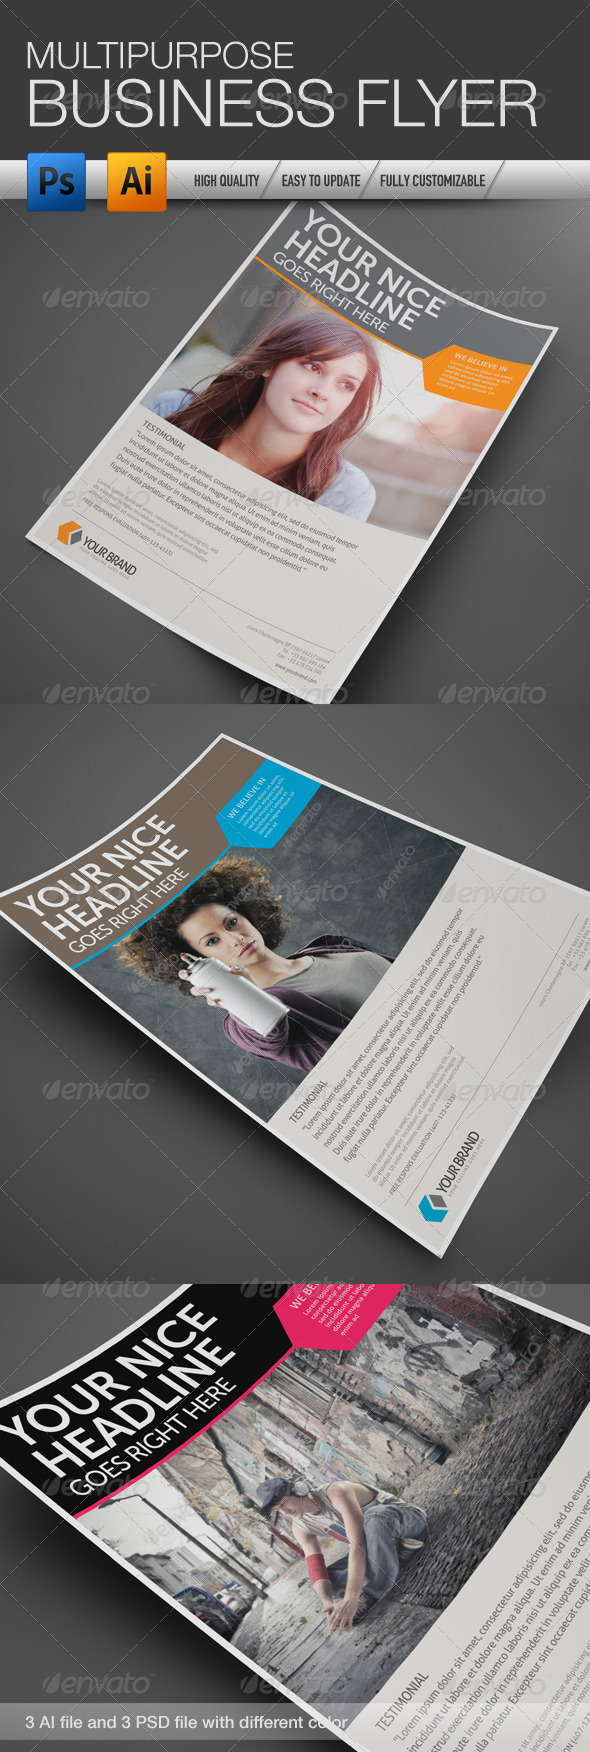 Multipurpose Business Flyer 4